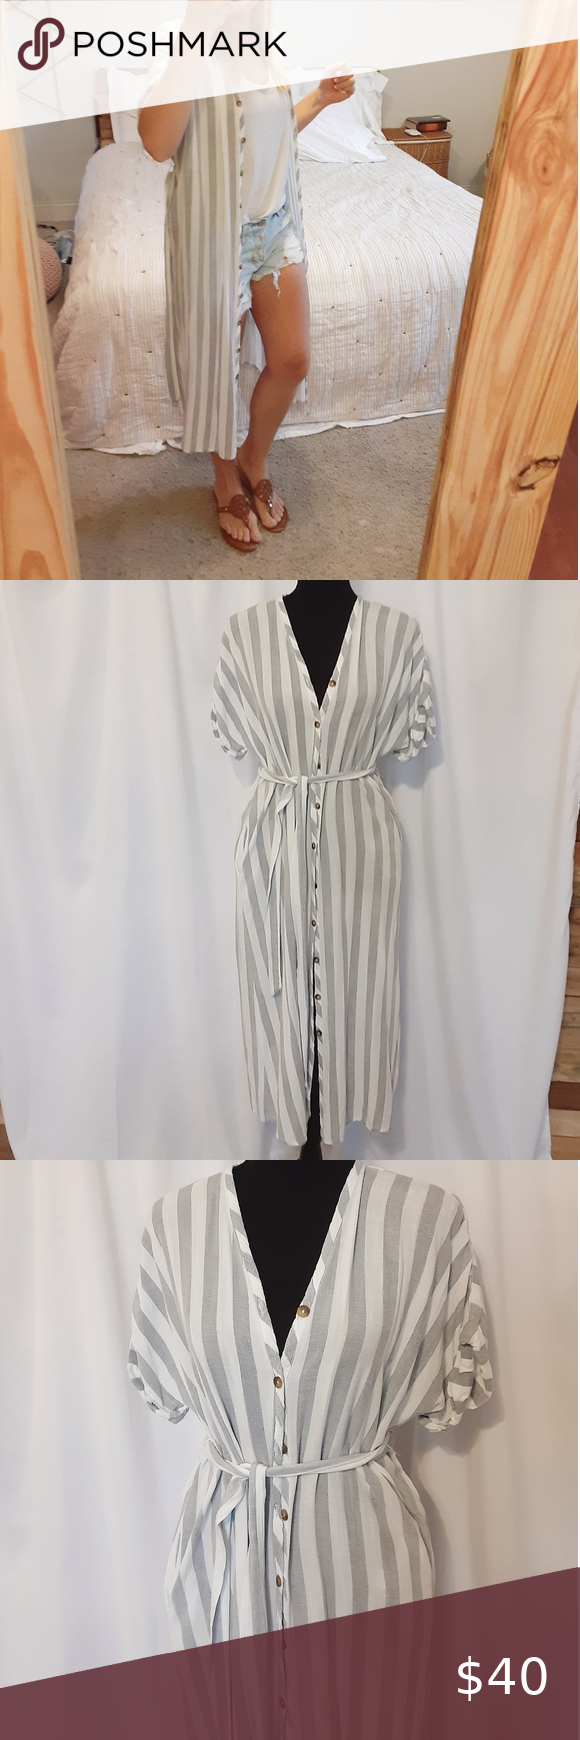 Boardwalk Midi Boutique Dress Worn twice, perfect condition. Bought from Jewel Boutique button front